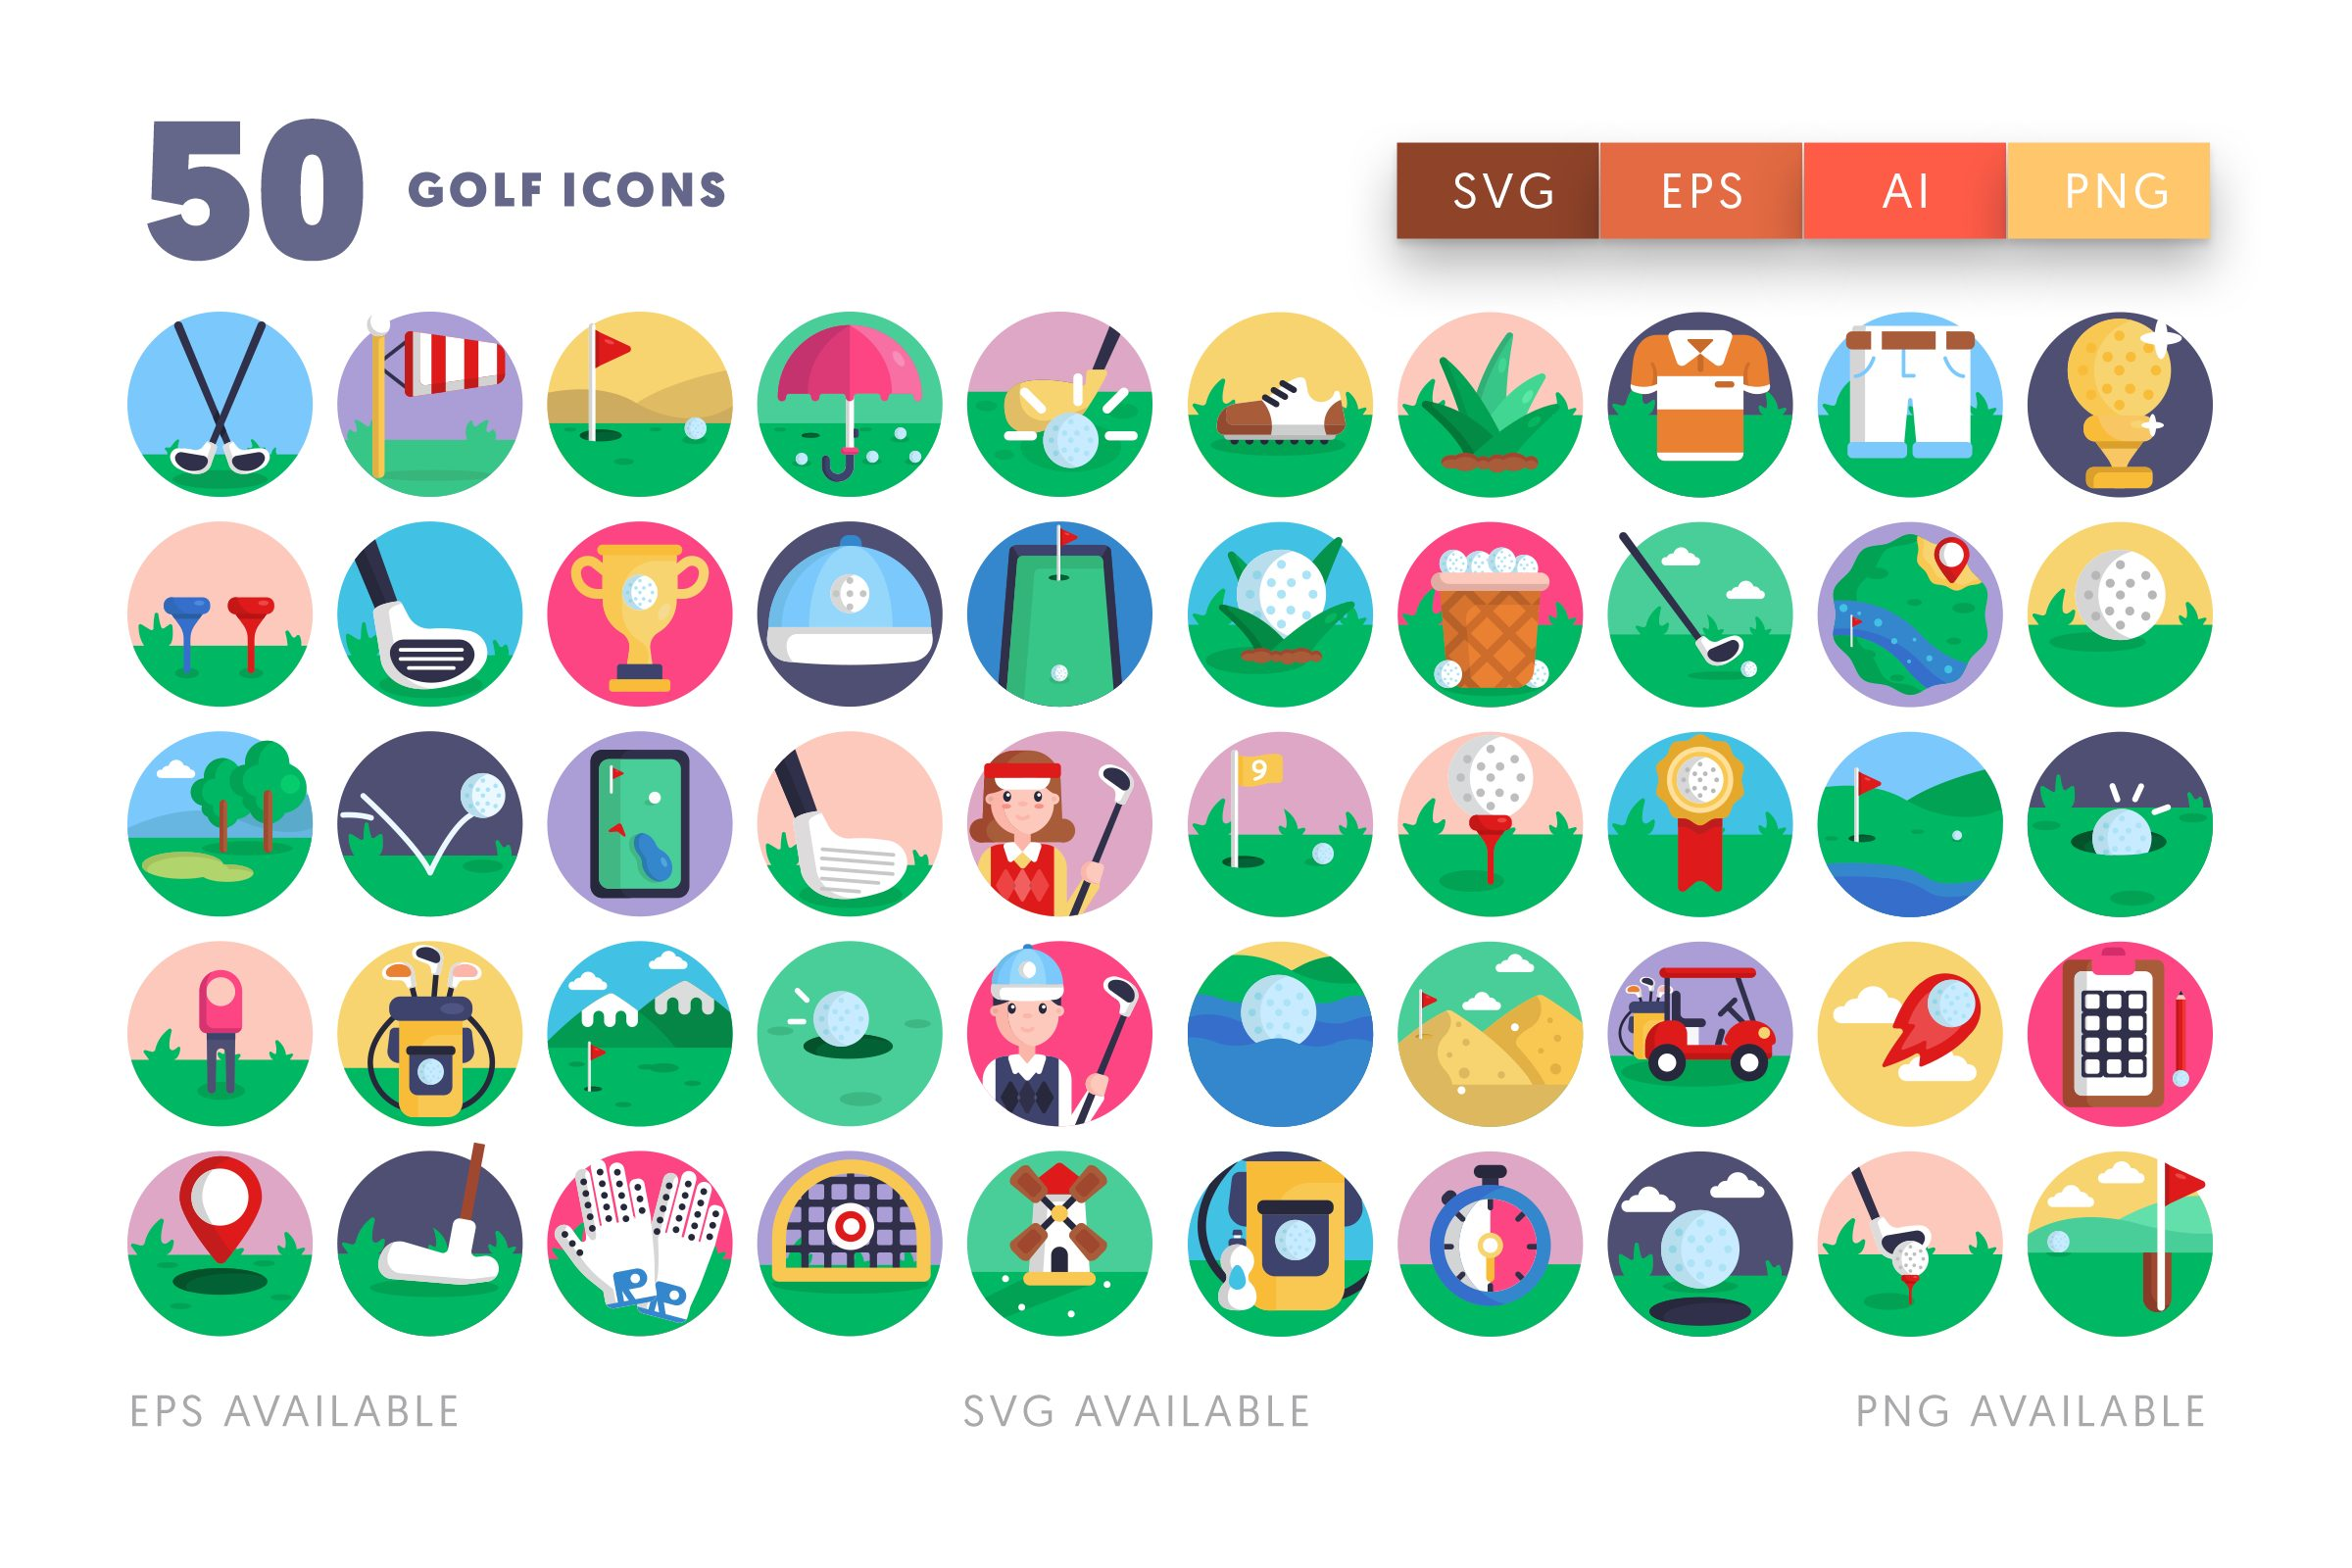 Golf icons png/svg/eps